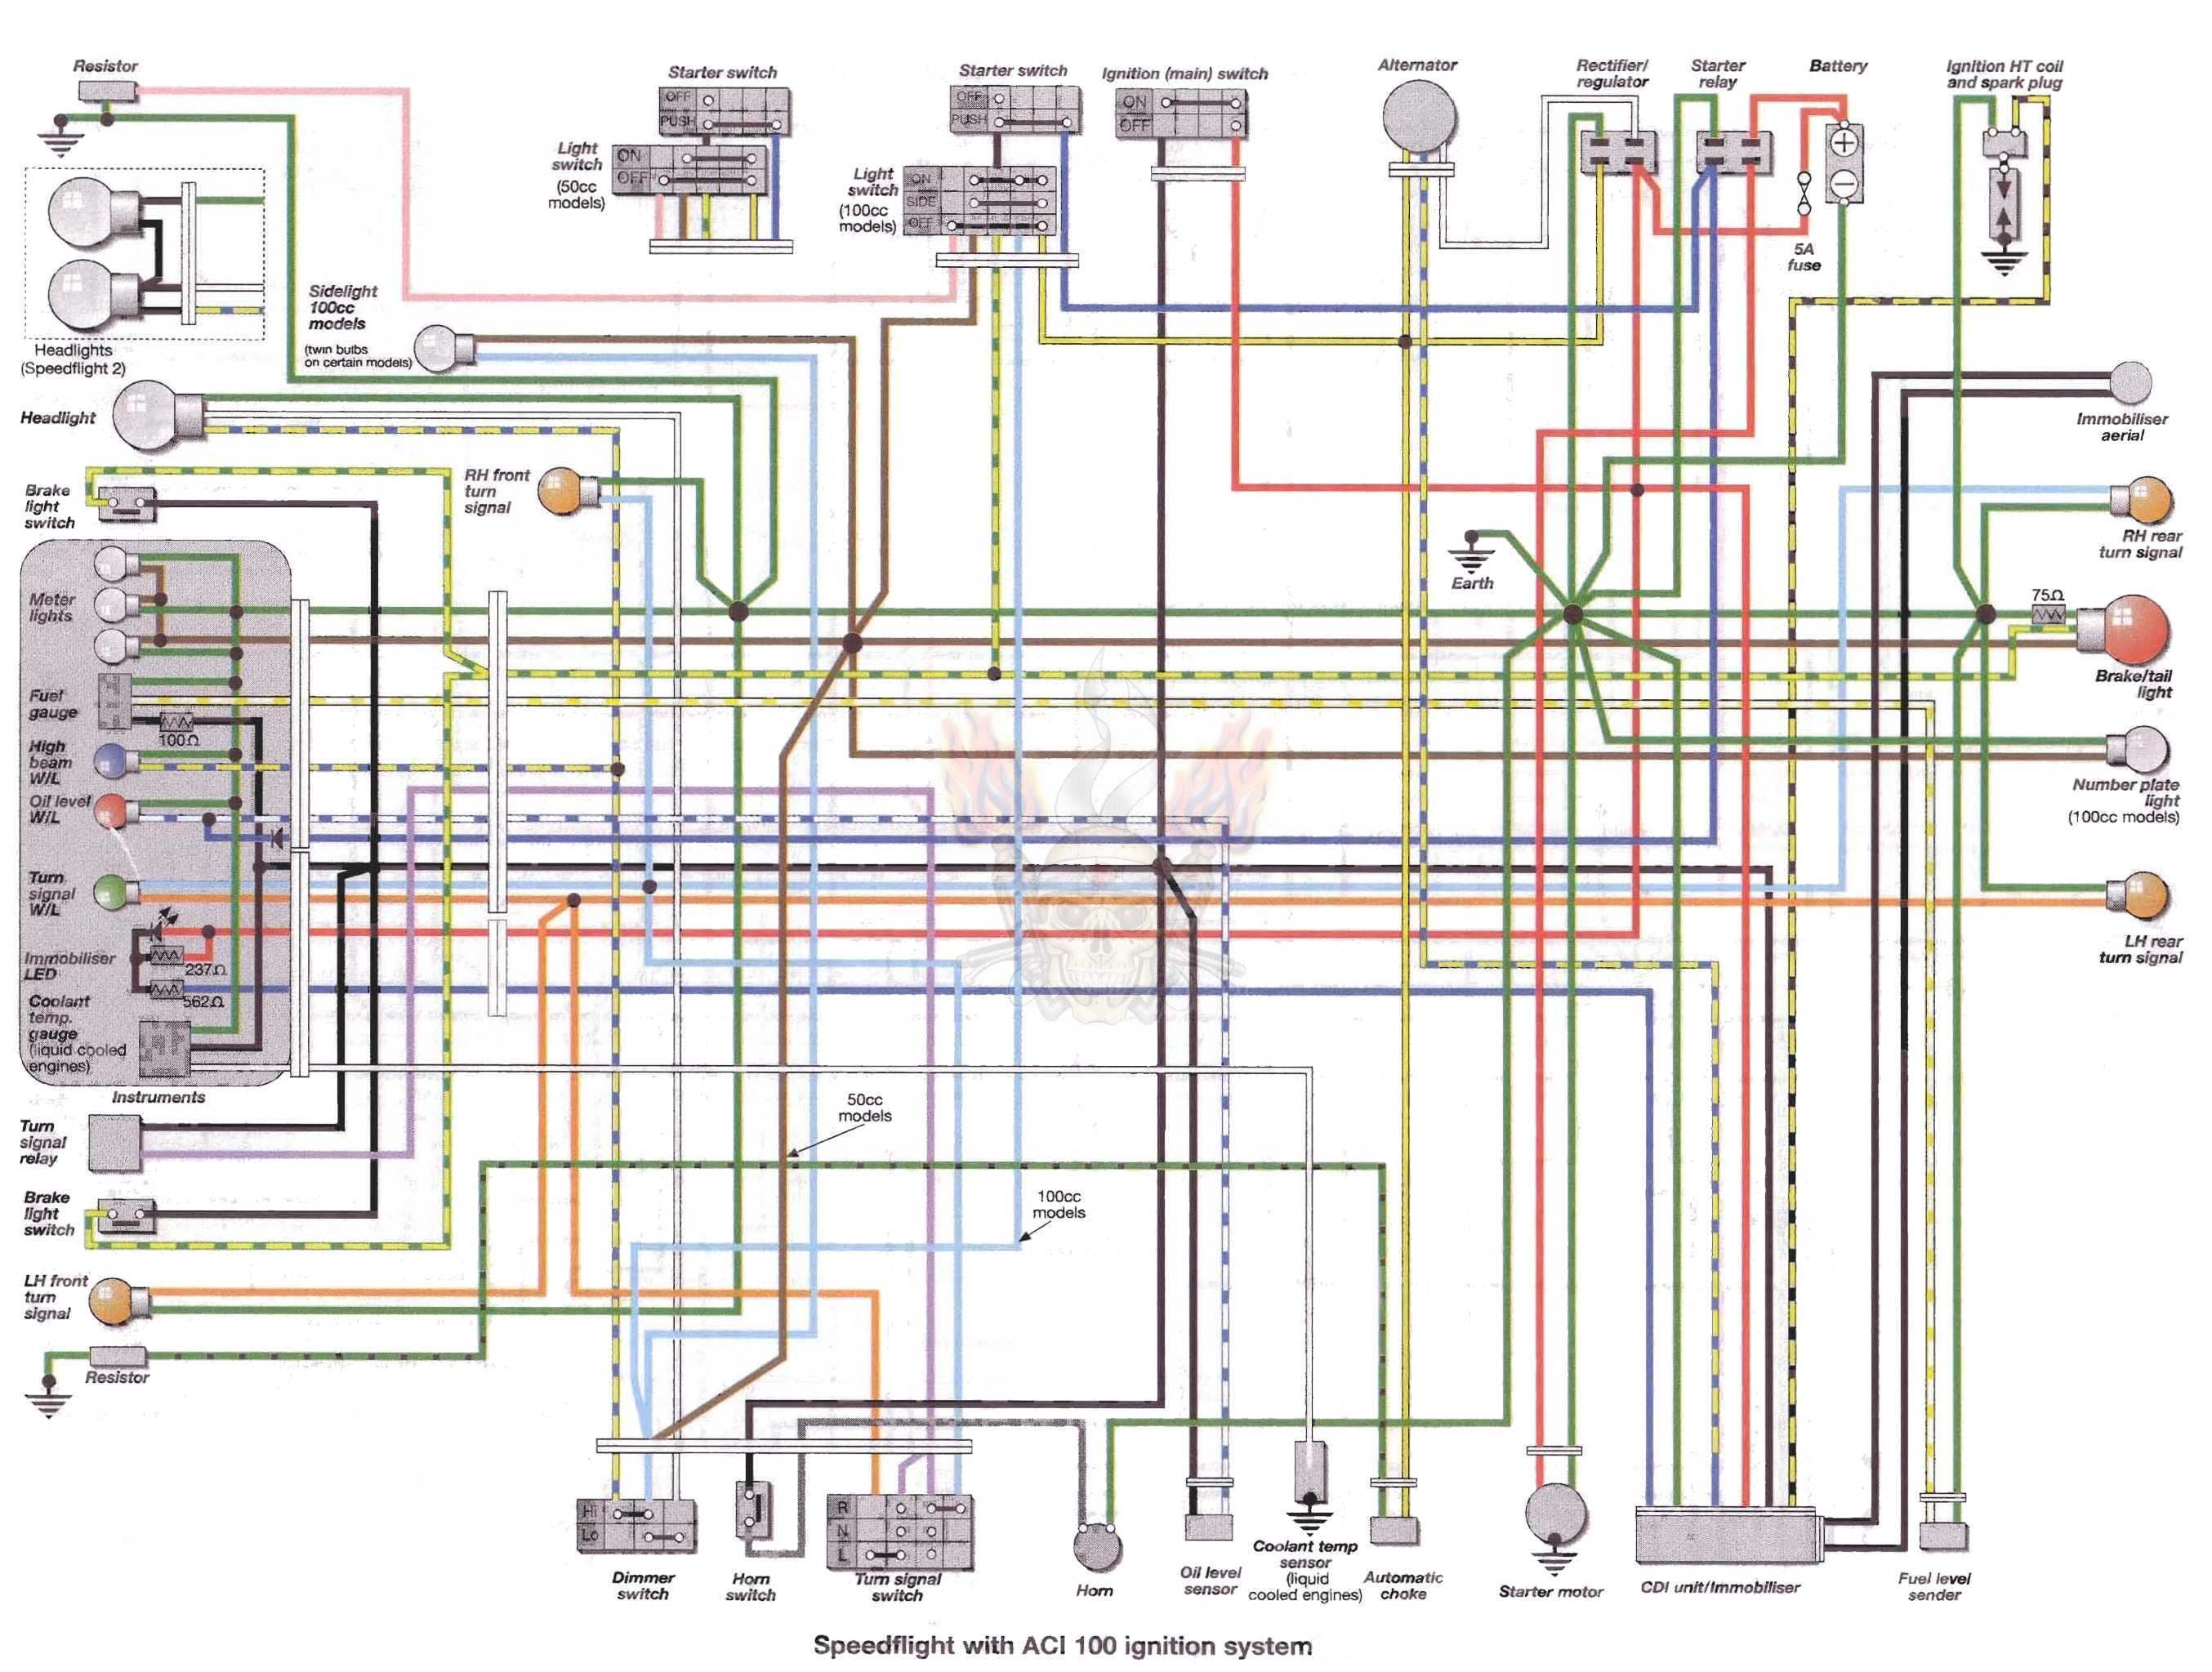 Ktm Xcf 350 Wiring Diagrams Electrical 2014 450 Diagram 2013 Specs